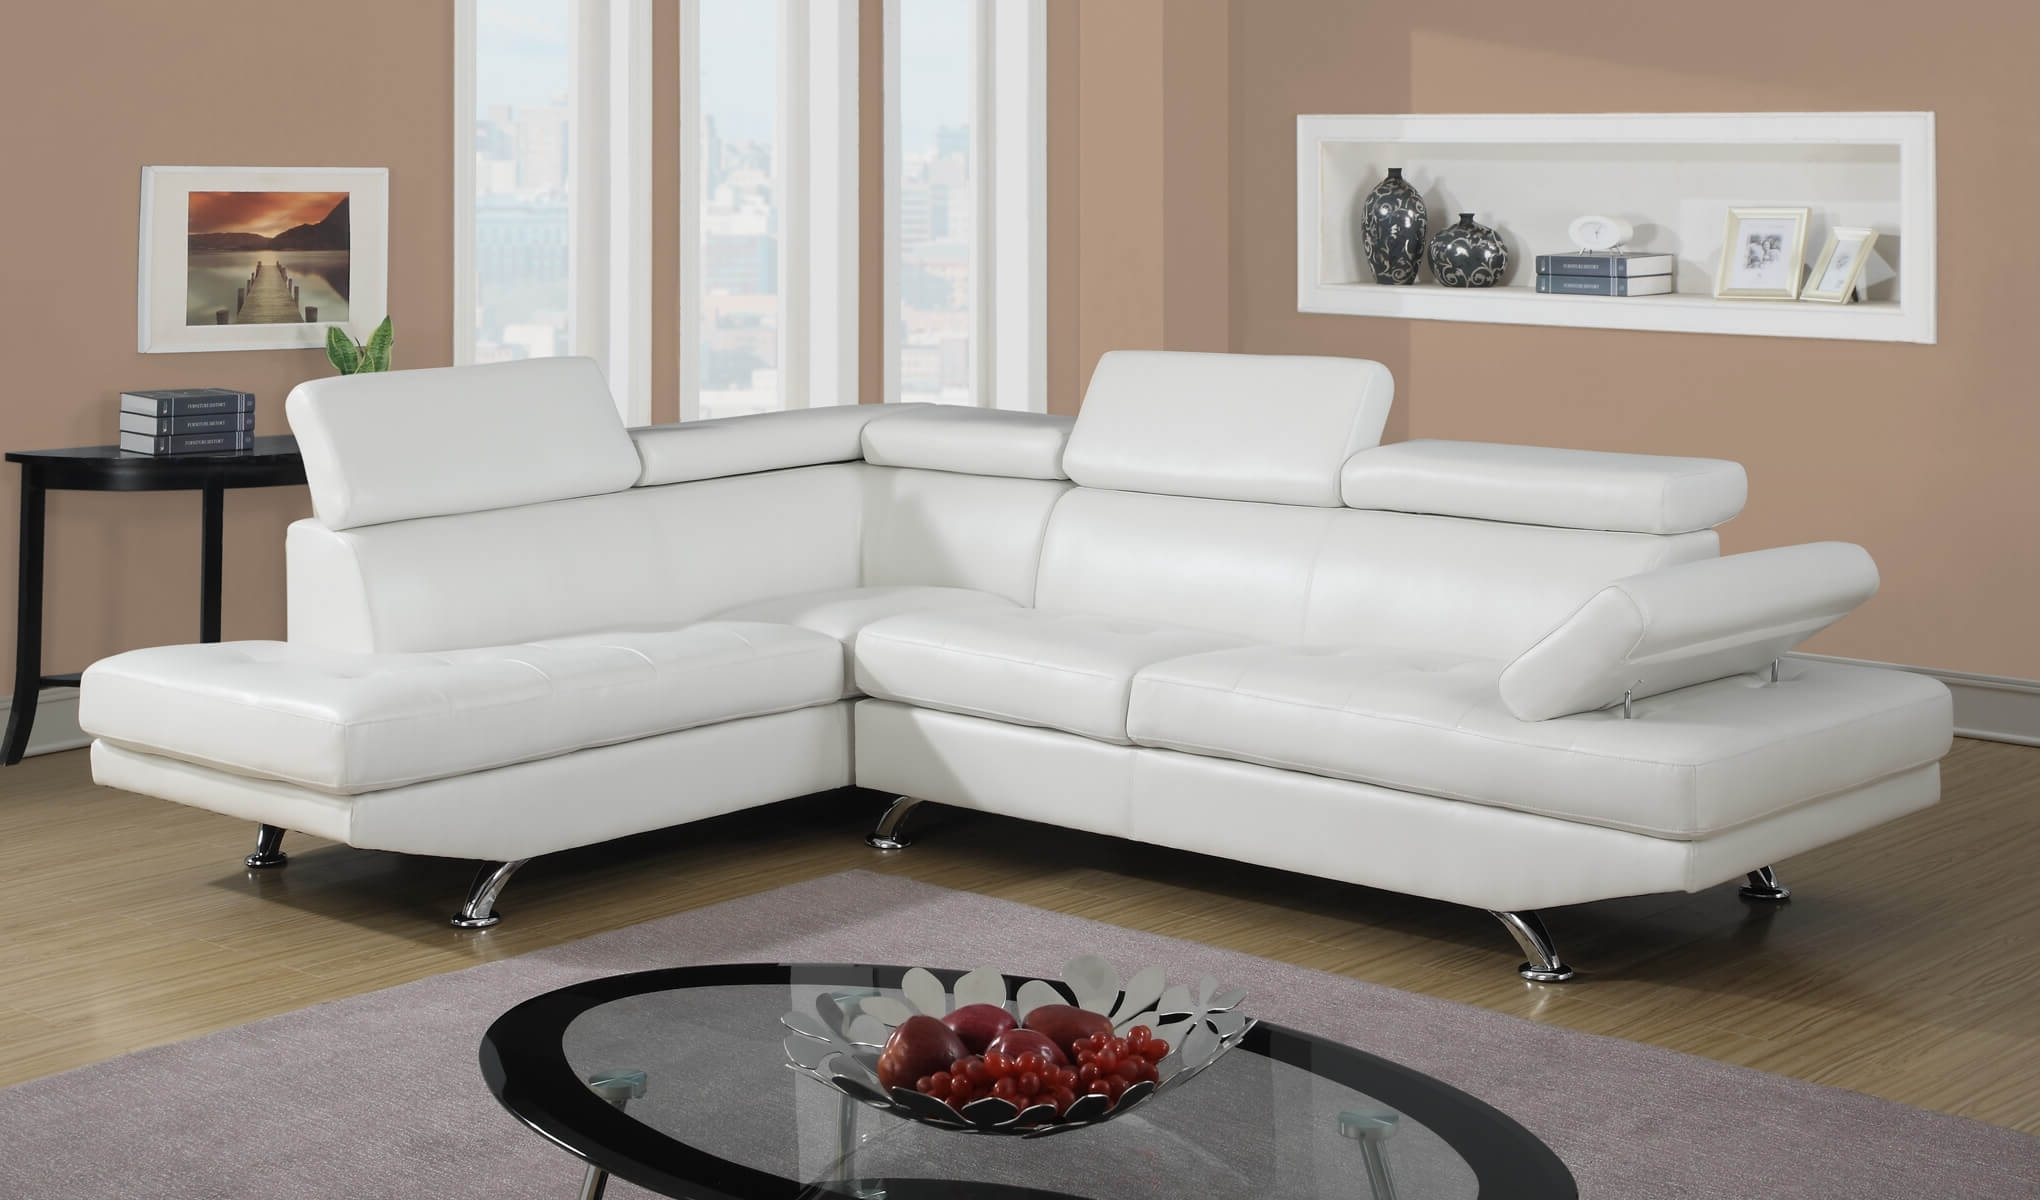 Sectional Sofa Sets With Well Known White Sectional Sofas (View 12 of 20)